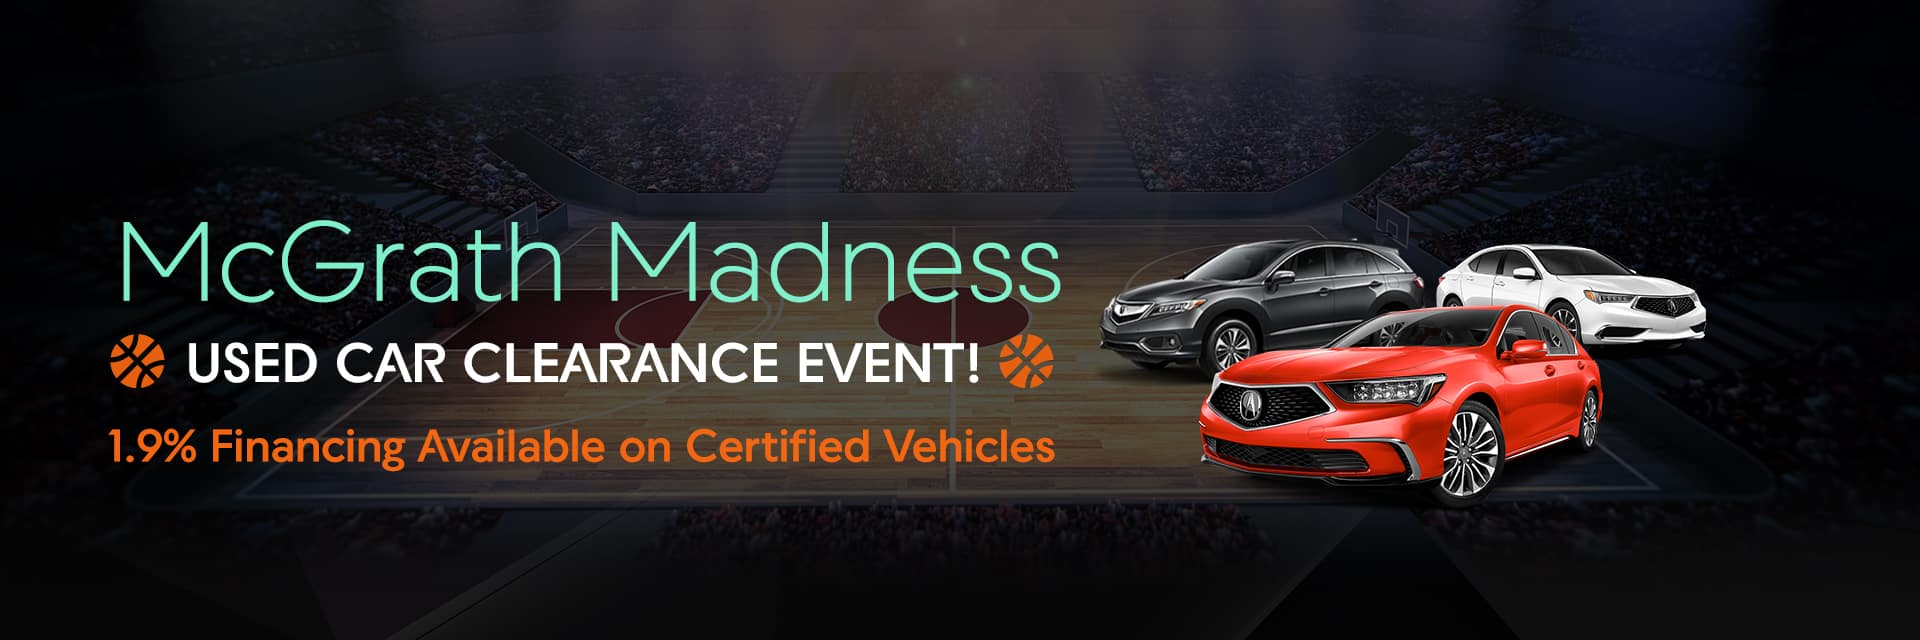 McGrath Madness Used Clearance Event